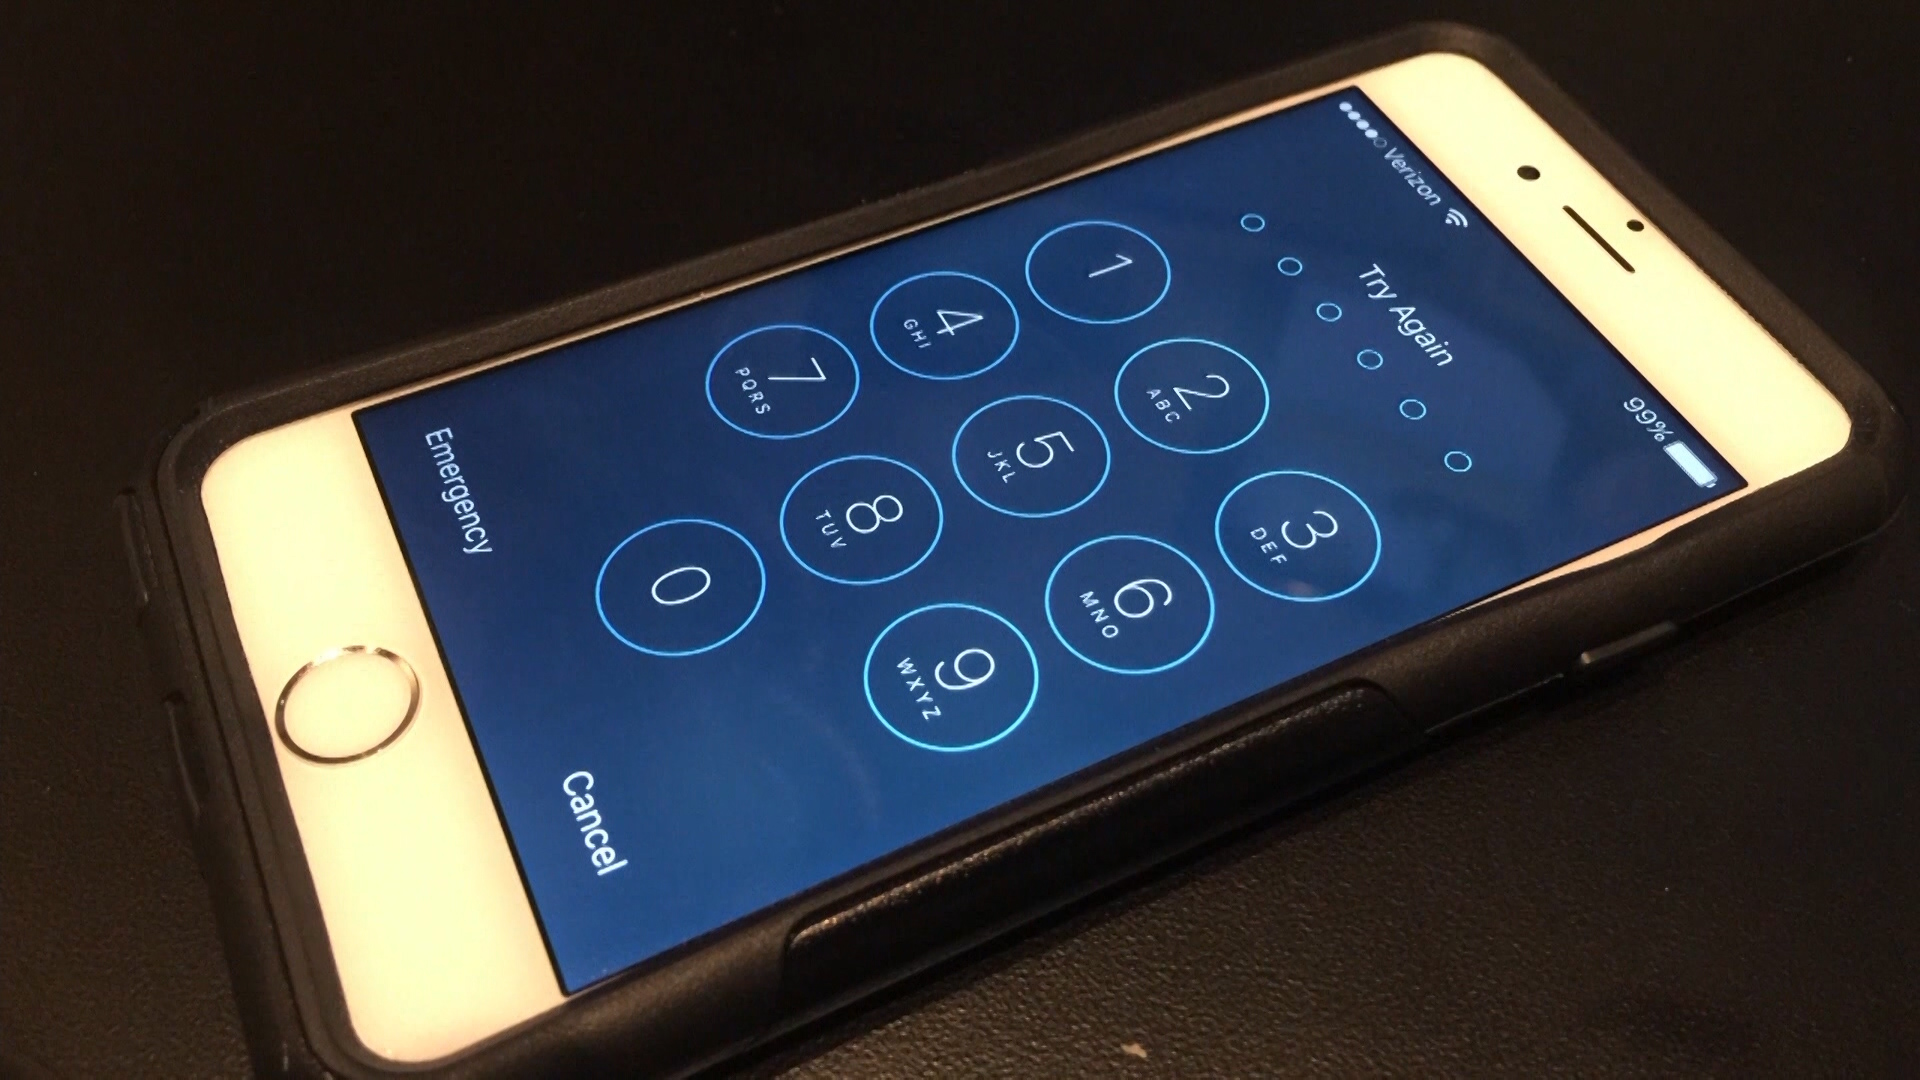 Video: Use your fingerprint to unlock your phone? You just gave up some rights